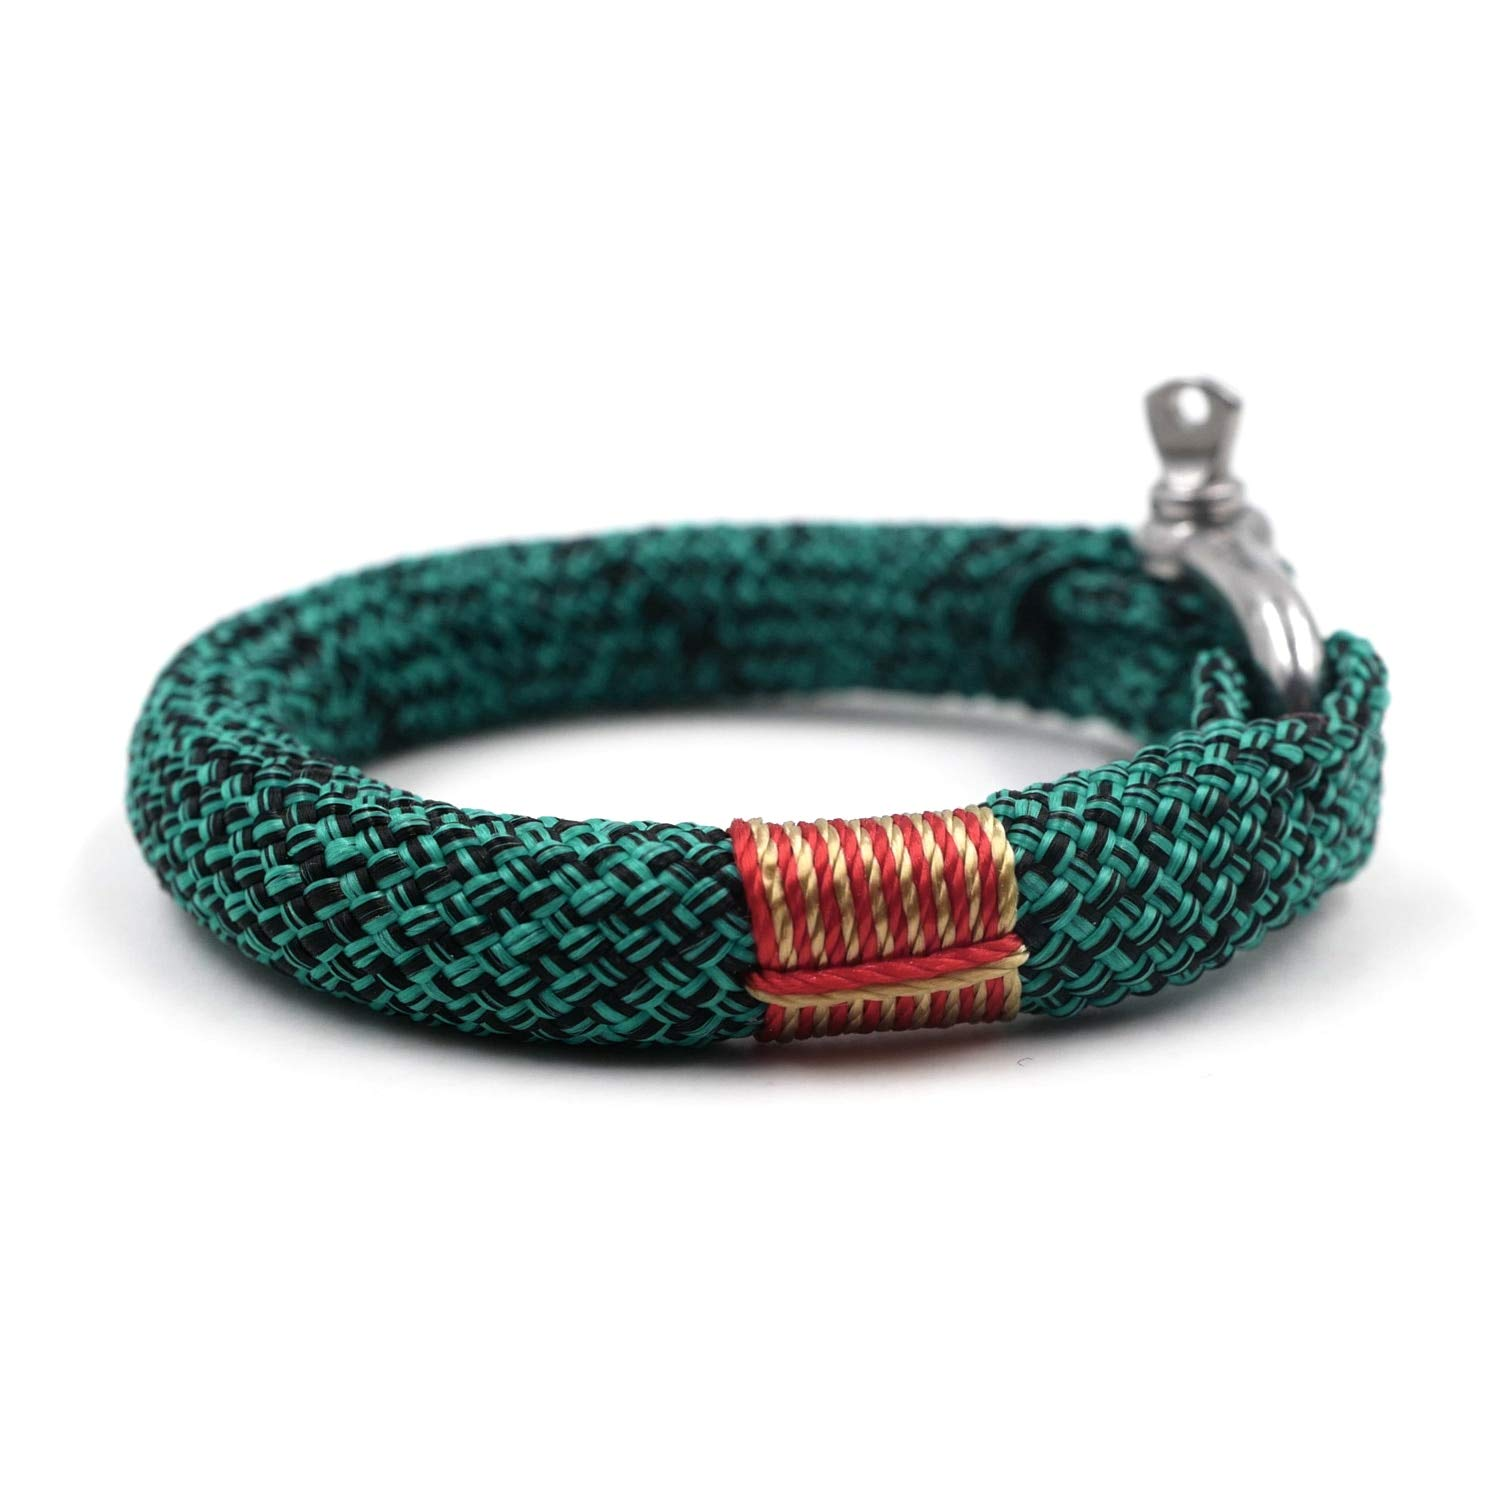 TTHER Rope Nautical Mirror - Black Green BRTN523 Unisex Nautical Braided Bracelet Hand-Made Yachting Rope Military Paracord Bracelet Wristband D-Shackle by TTHER